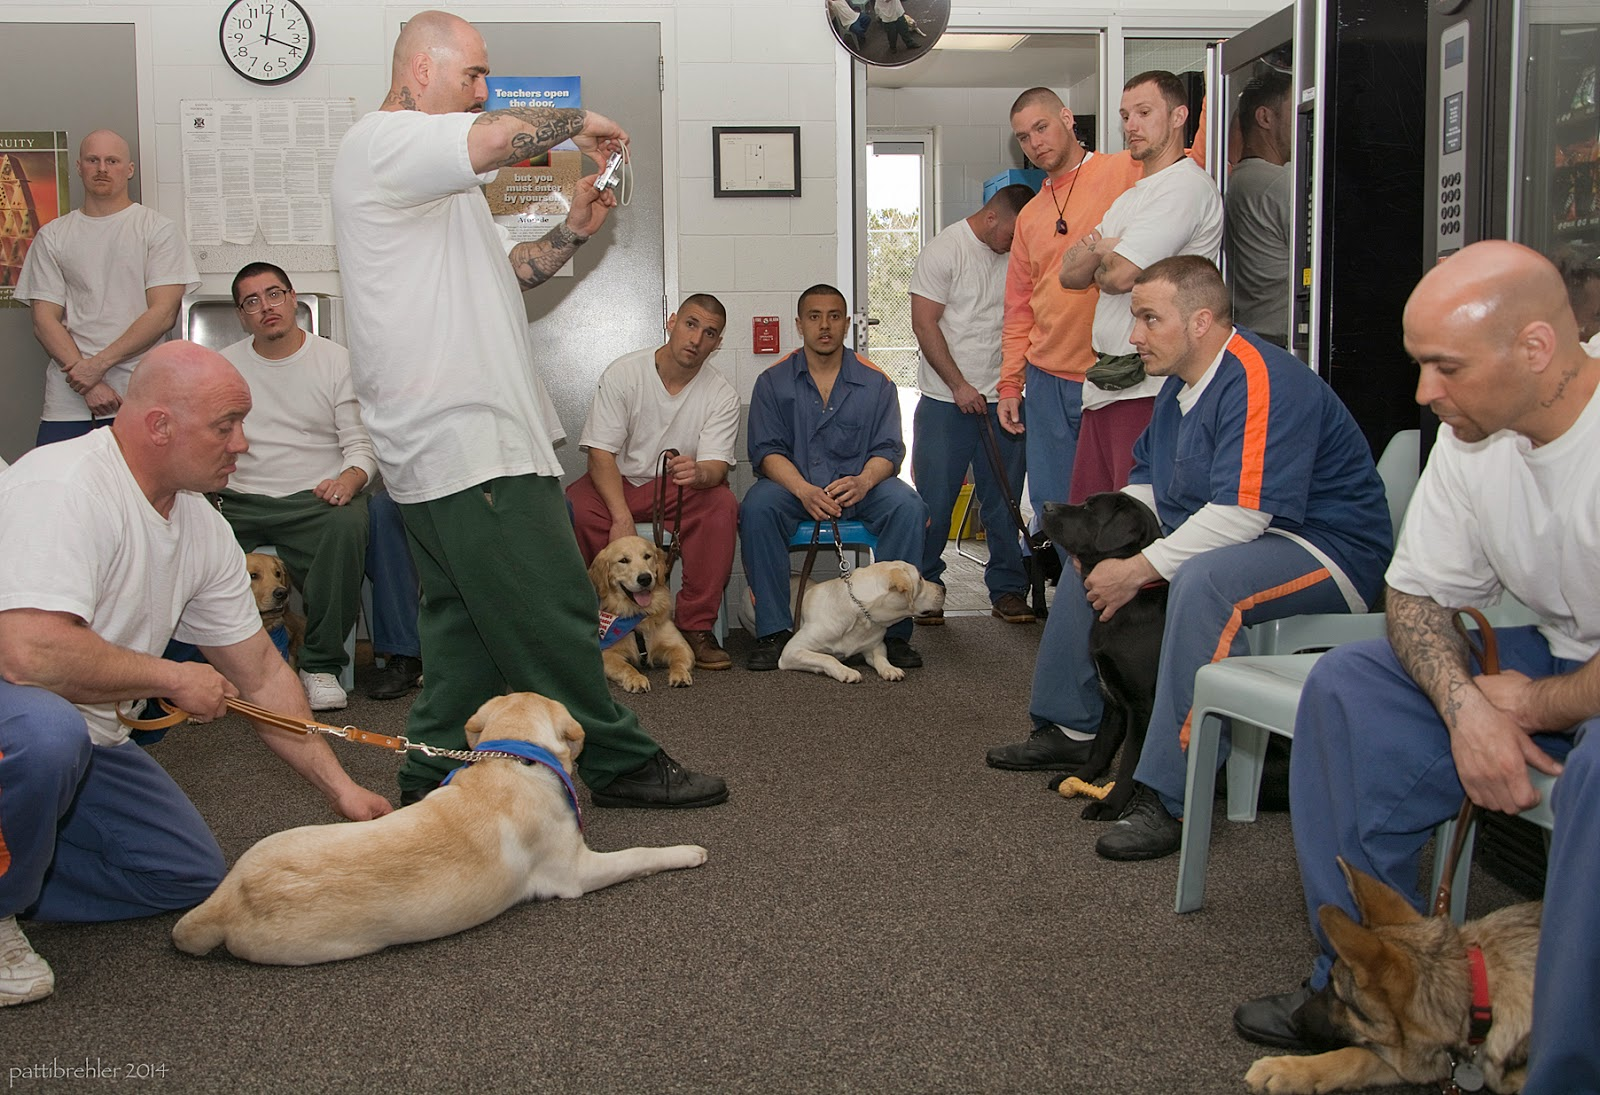 A group of about 11 men circle a small carpeted room, some kneeling on the floor, others standing and the rest sitting in light blue plastic chairs. The man staning in the middle is taking a photo of the man sitting on the right with a black lab sitting between his knees. There are yellow labs, golden retrievers and a german shepherd puppy with the men.